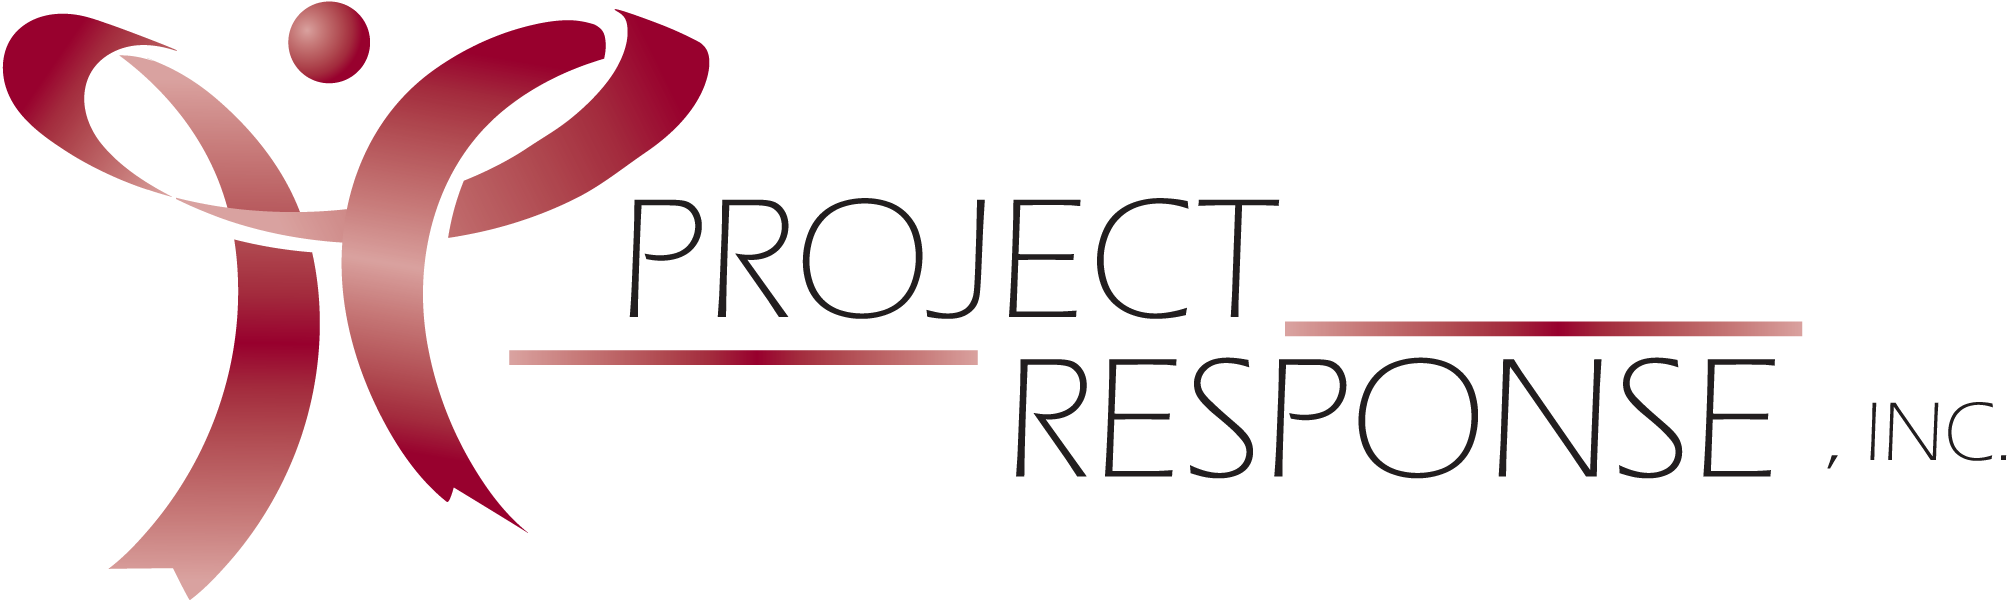 Project Response, Inc